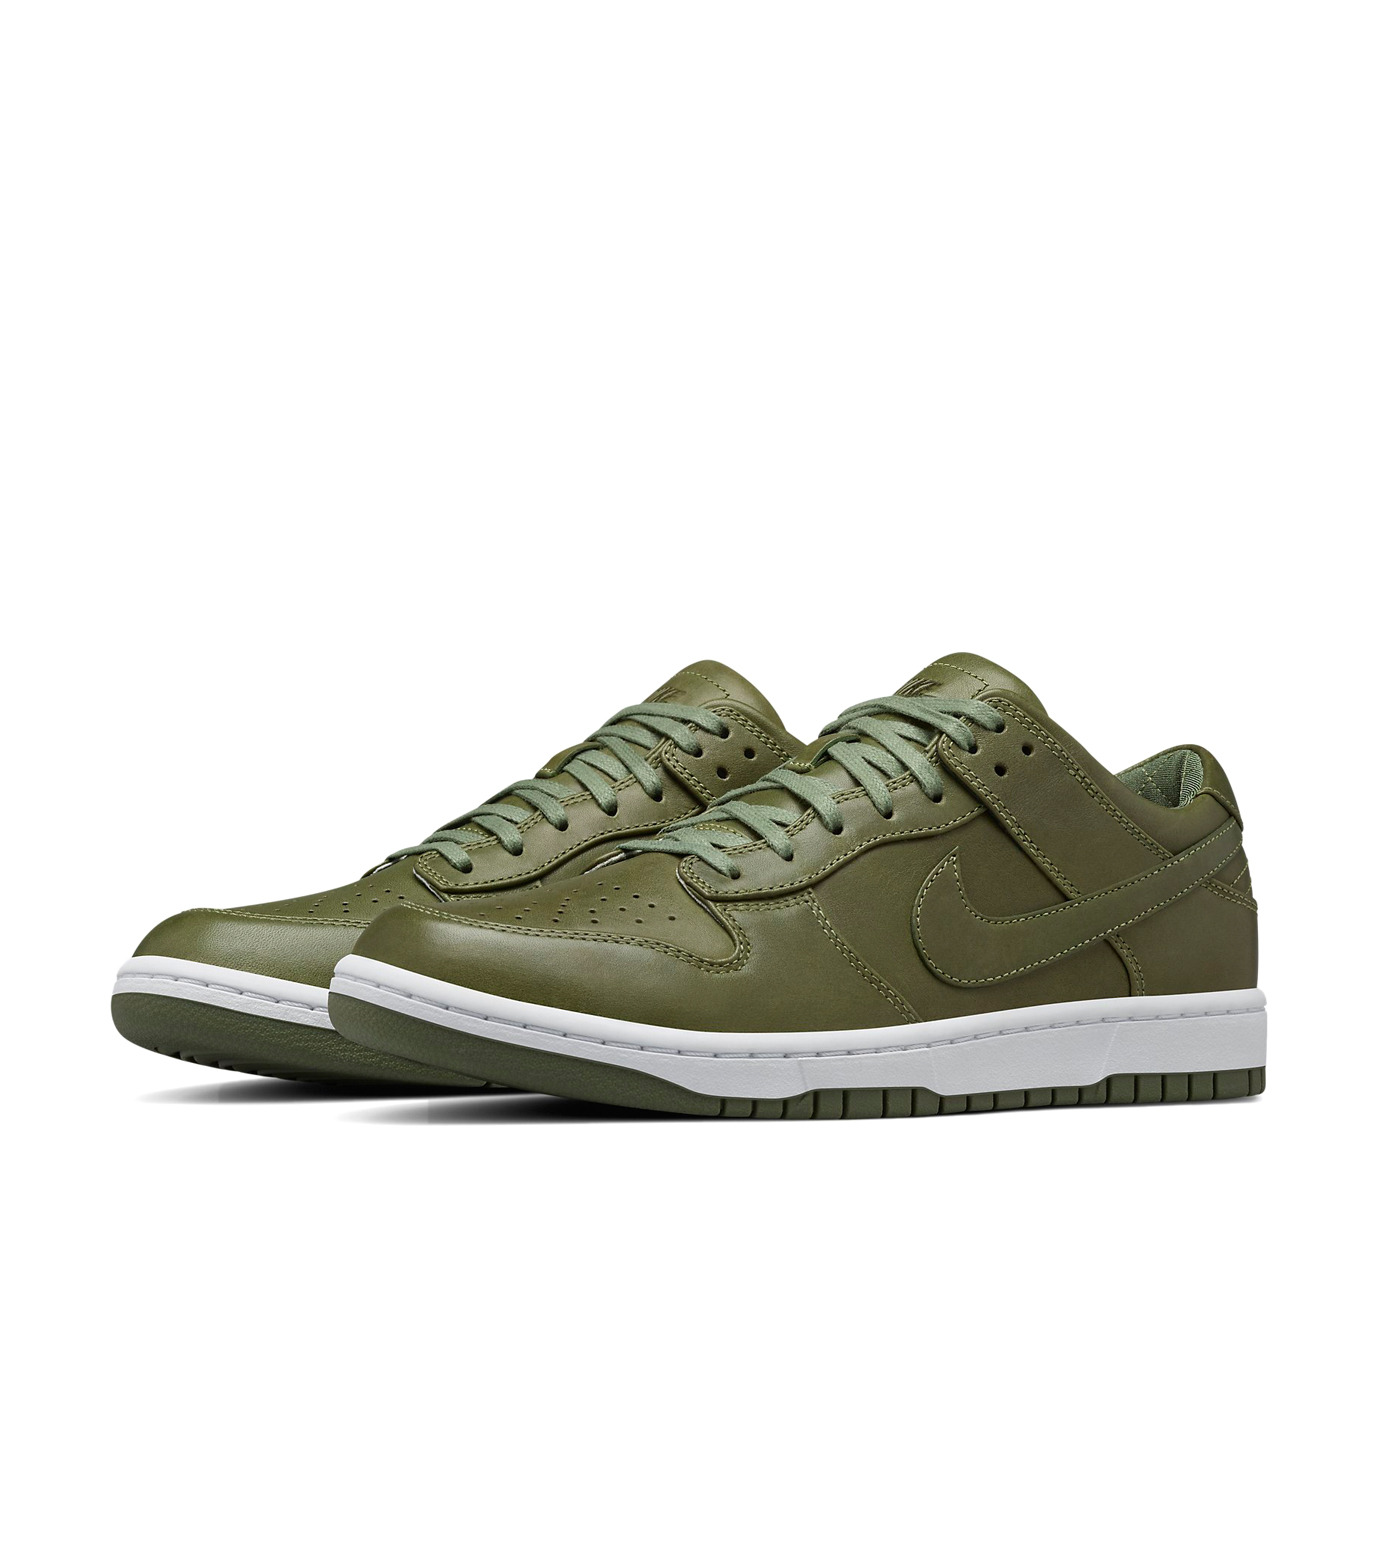 NIKE(ナイキ)のLAB DUNK LUX LOW-GRAY(シューズ/shoes)-857587-300-11 拡大詳細画像3